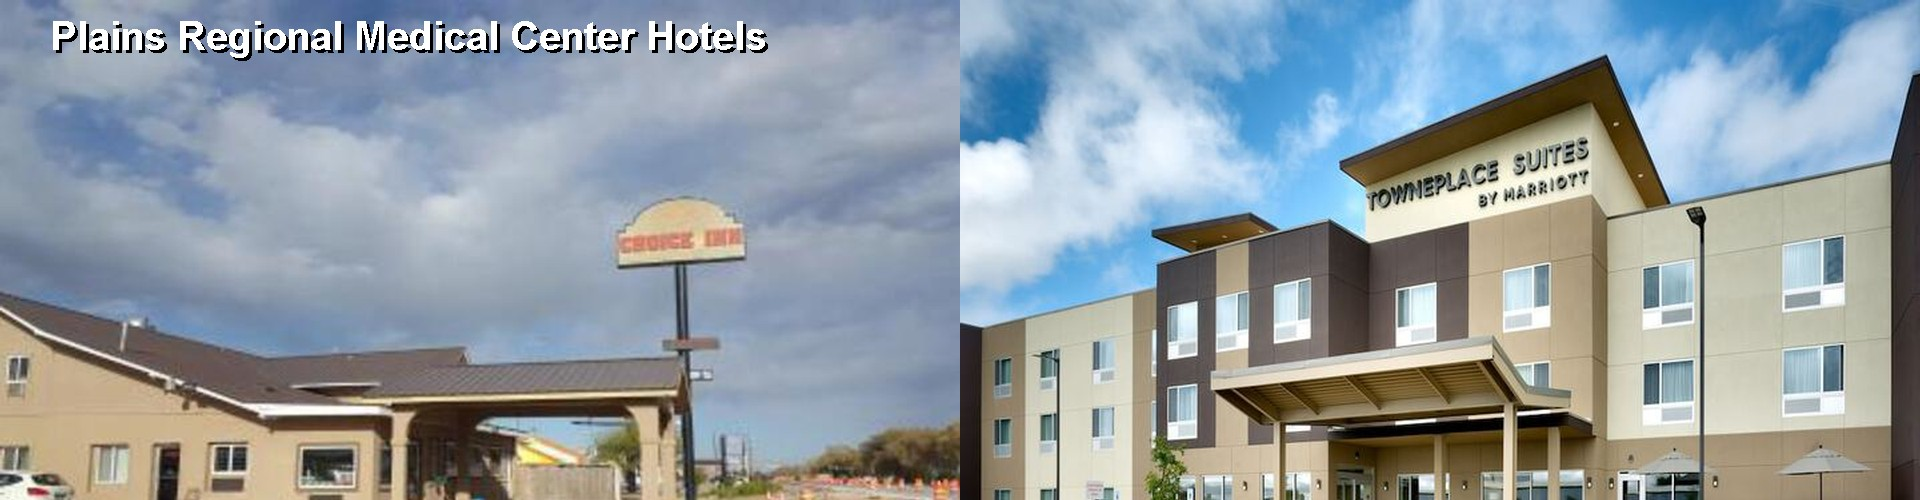 5 Best Hotels near Plains Regional Medical Center